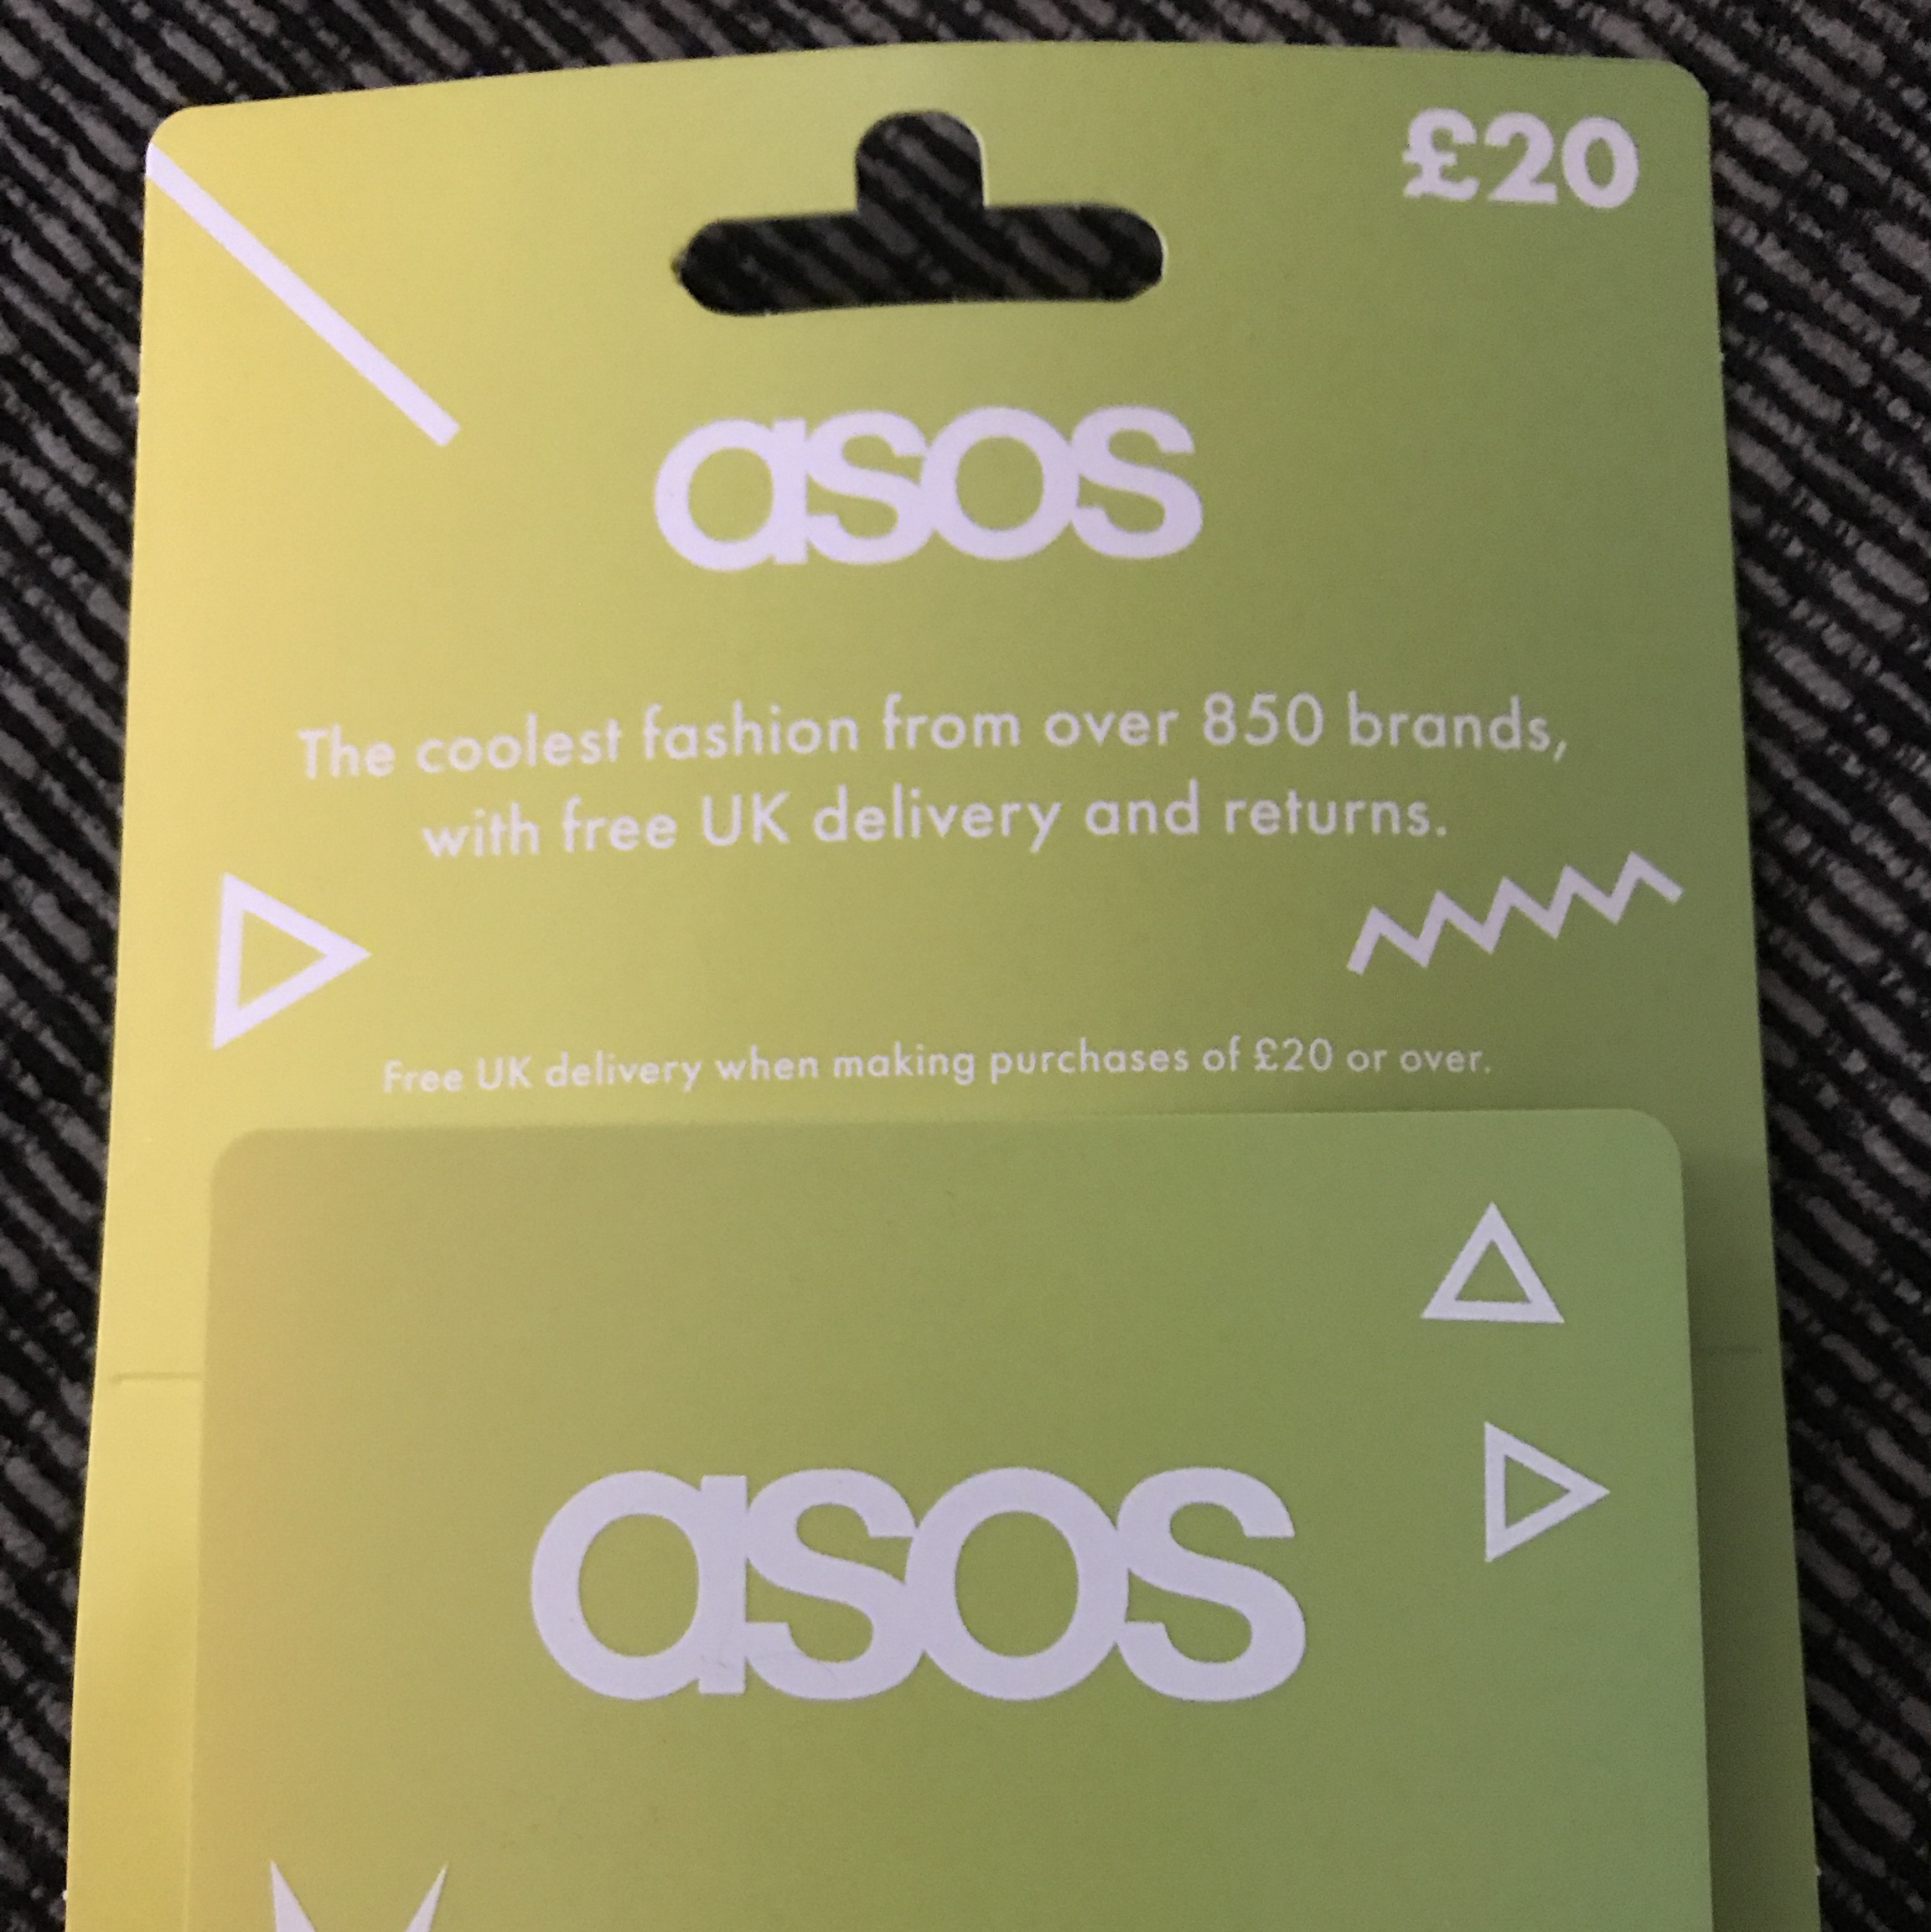 20 Asos Gift Card Will Message You The Code When Depop